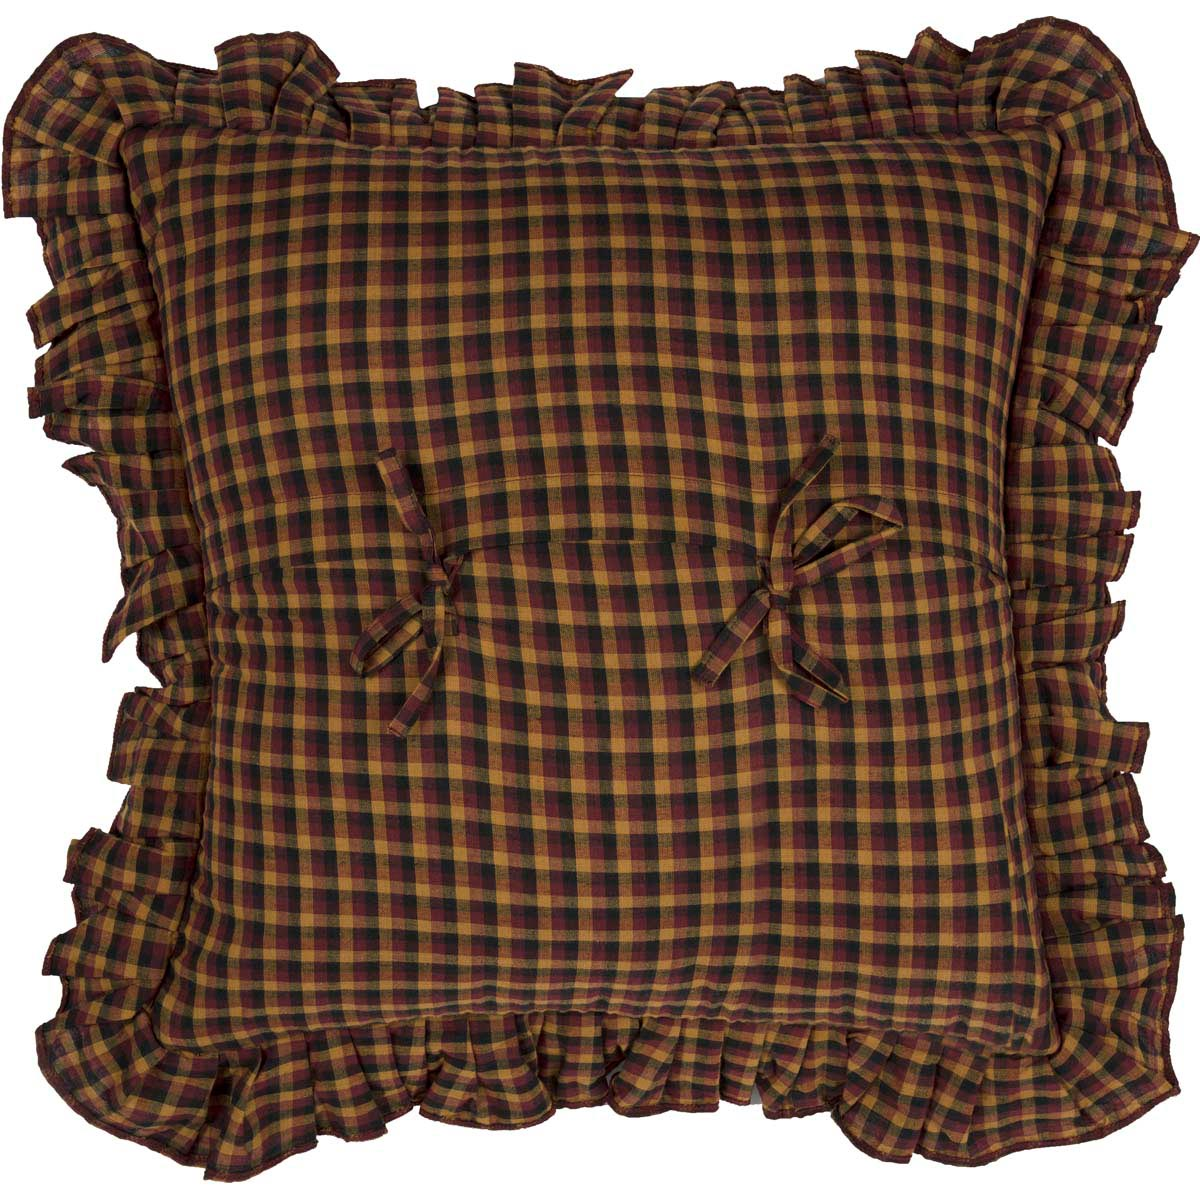 Primitive Crow Pillow, by VHC Brands.